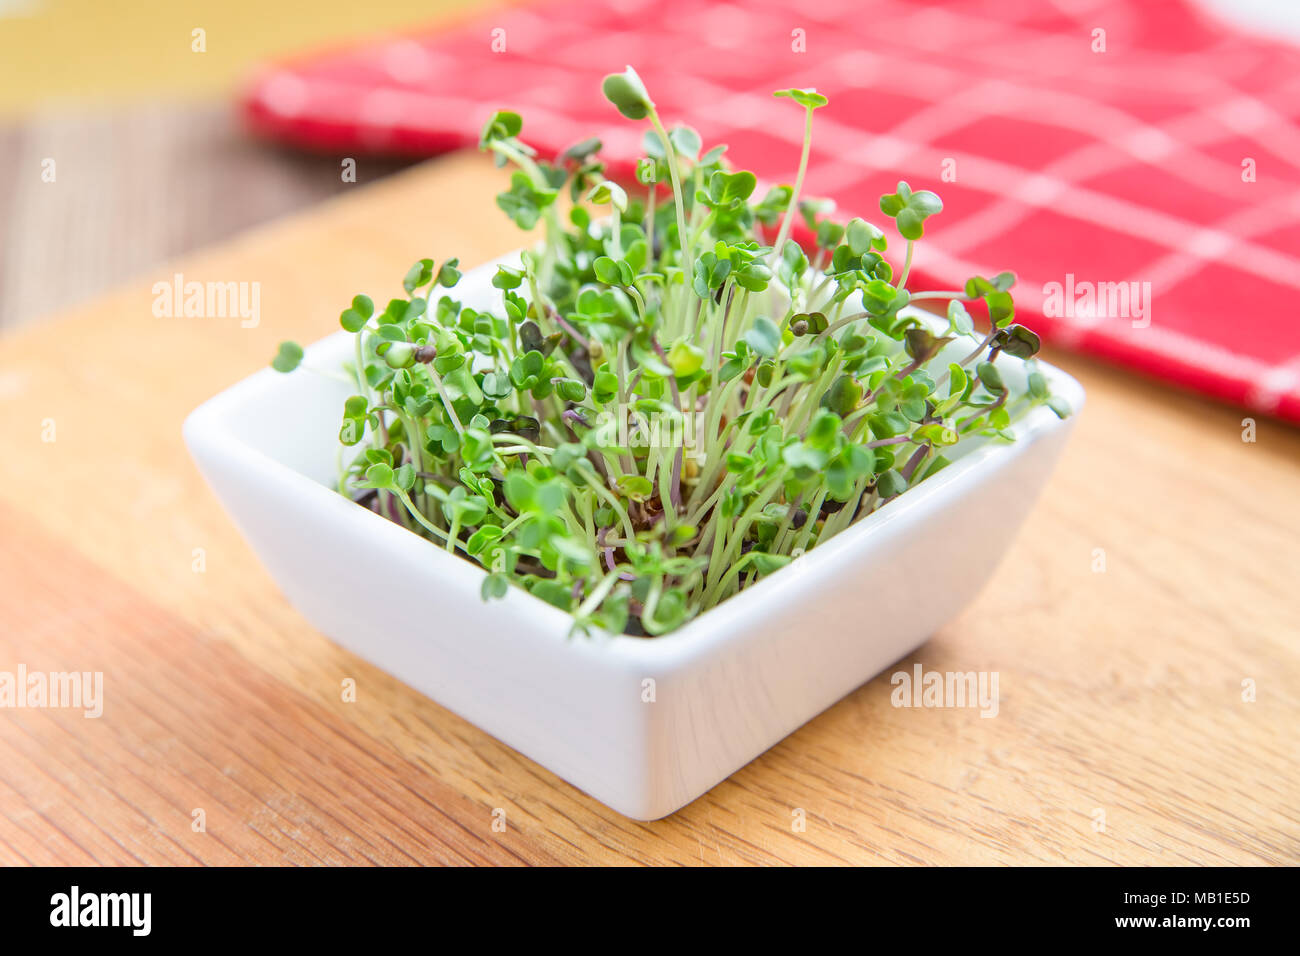 Dish of fresh microgreen sprouts on a wooden kitchen counter with a red napkin in background - Stock Image